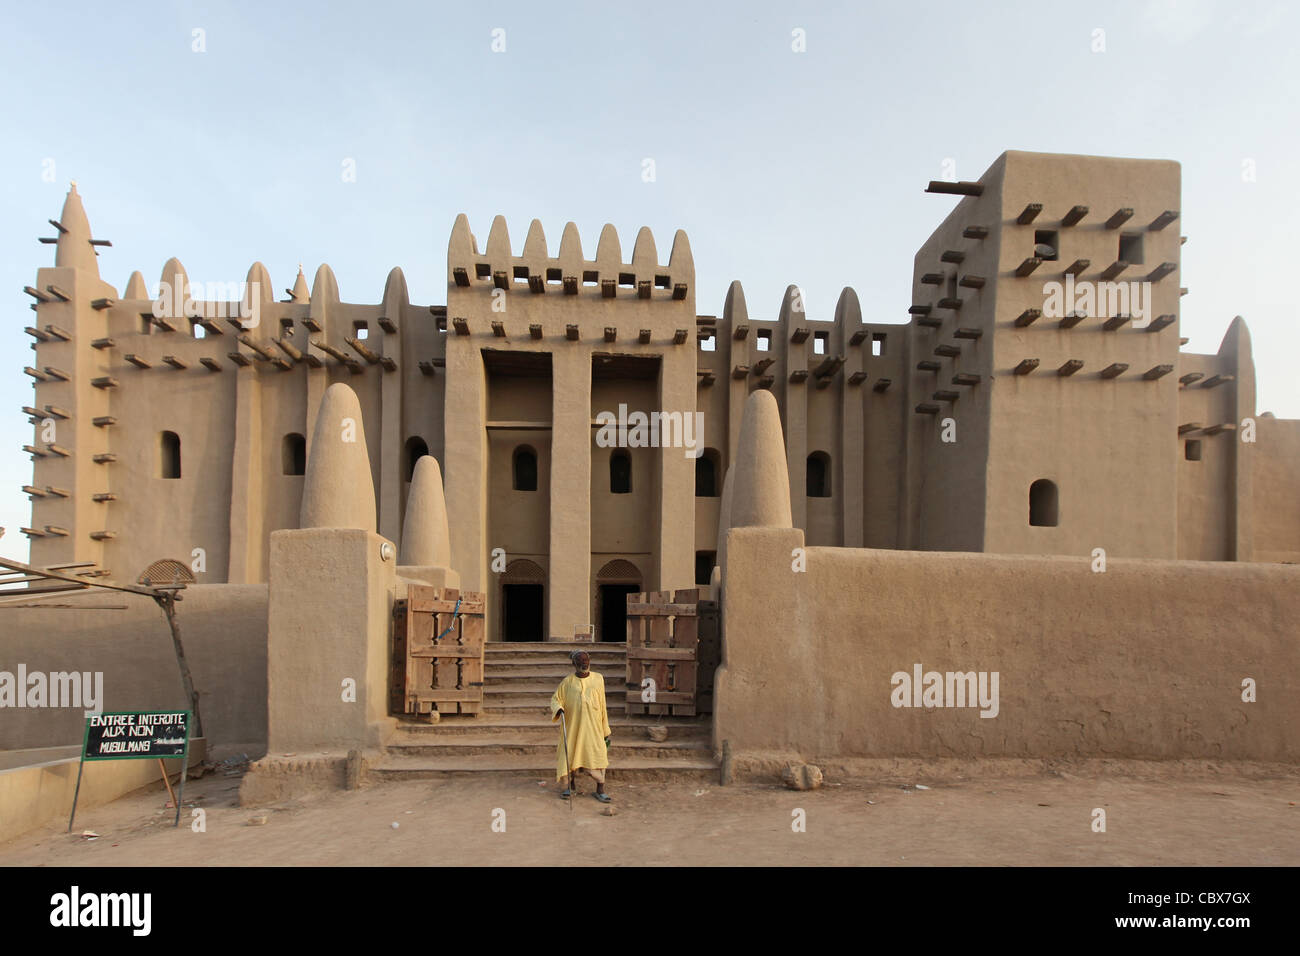 Great Mosque of Djenné, Mali, Africa - Stock Image